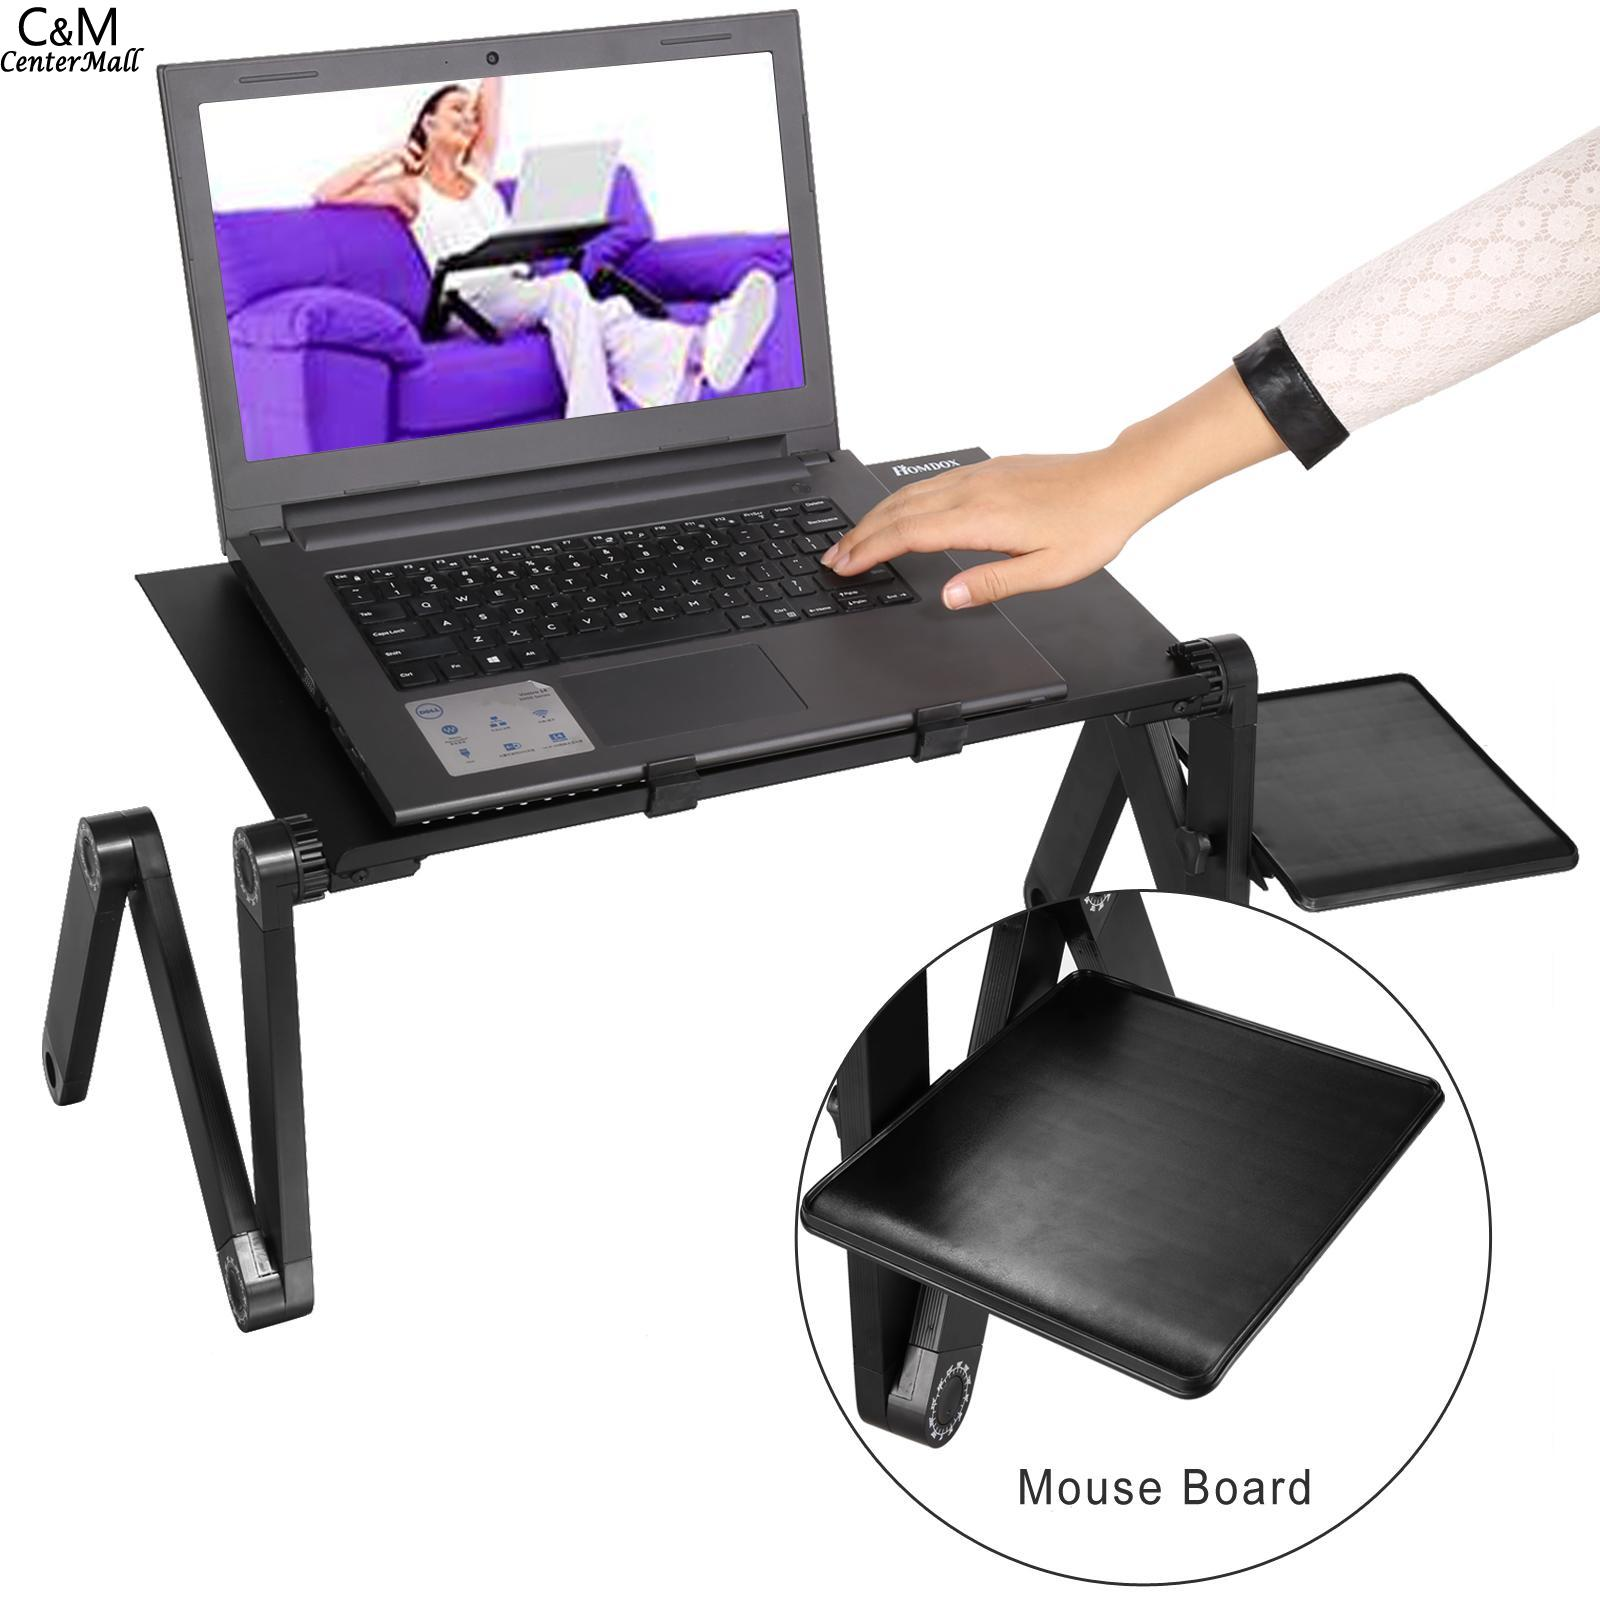 Homdox Computer Desk Portable Adjustable Foldable Laptop Notebook Lap PC Folding Desk Table Vented Stand Bed Tray new(China)